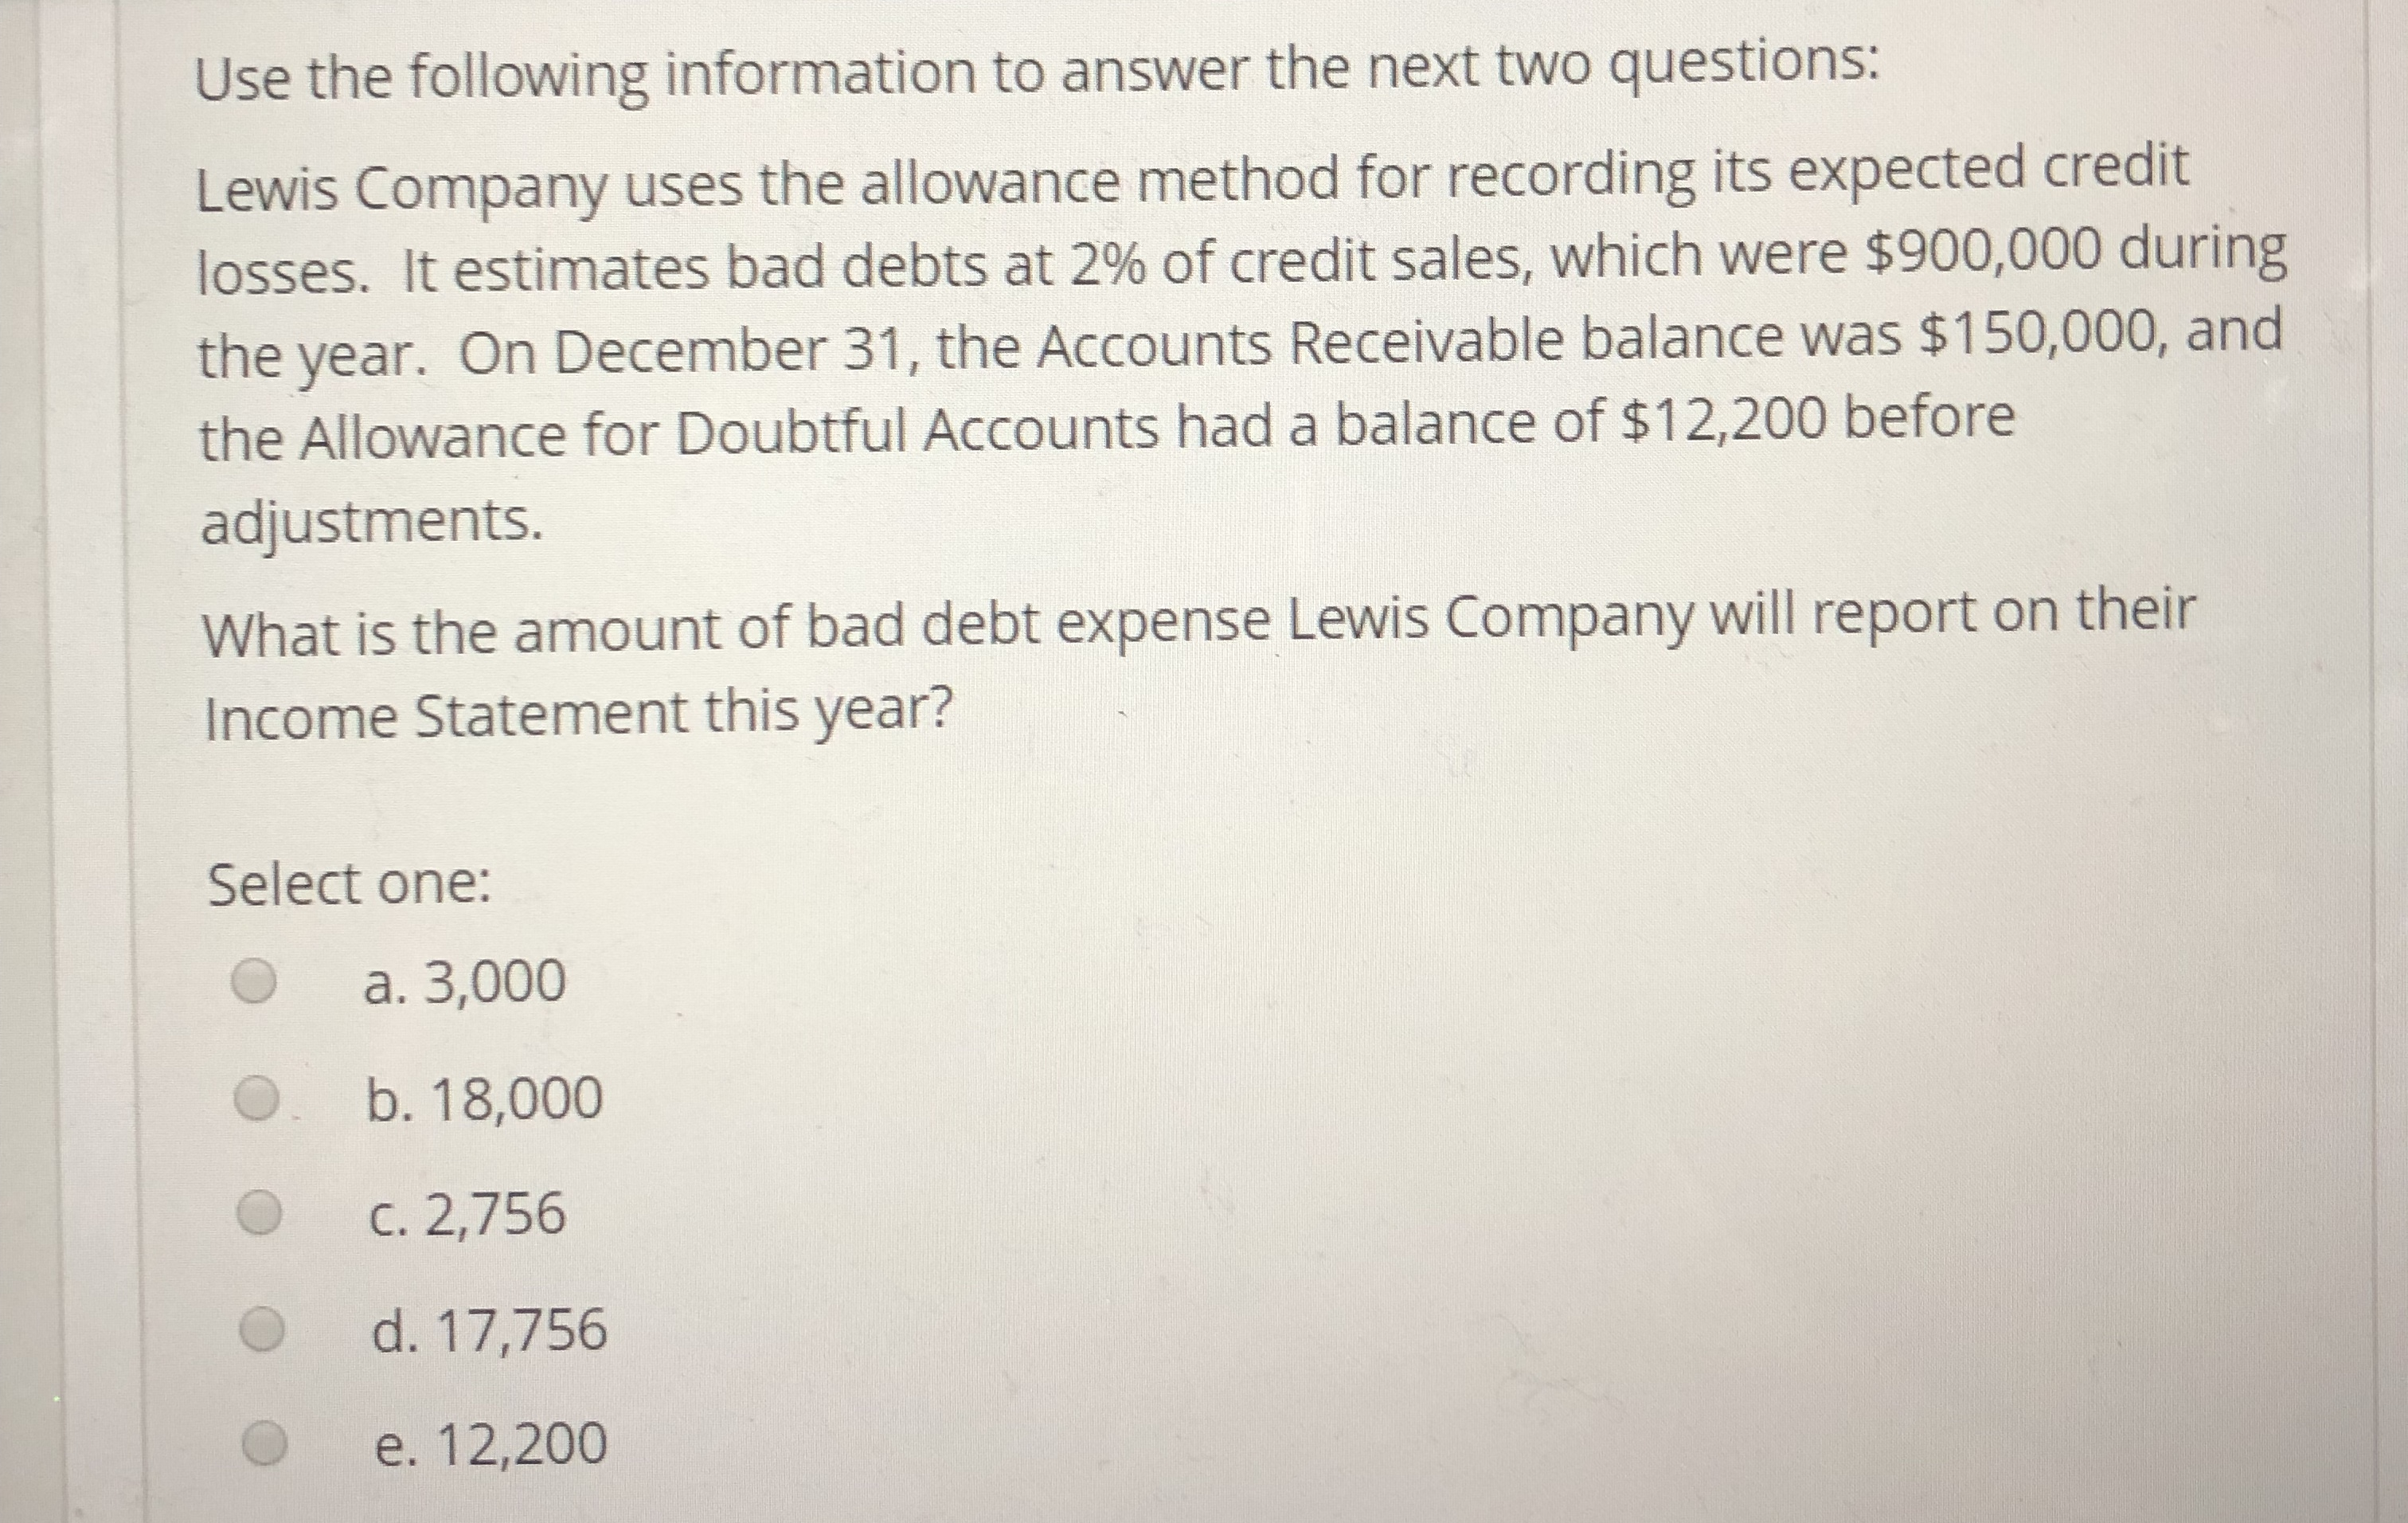 Use the following information to answer the next two questions: Lewis Company uses the allowance method for recording its expected credit losses. It estimates bad debts at 2% of credit sales, which were $900,000 during the year. On December 31, the Accounts Receivable balance was $150,000, and the Allowance for Doubtful Accounts had a balance of $12,200 before adjustments. What is the amount of bad debt expense Lewis Company will report on their Income Statement this year? Select one: O a. 3,000 b. 18,000 C. 2,756 d. 17,756 O e. 12,200